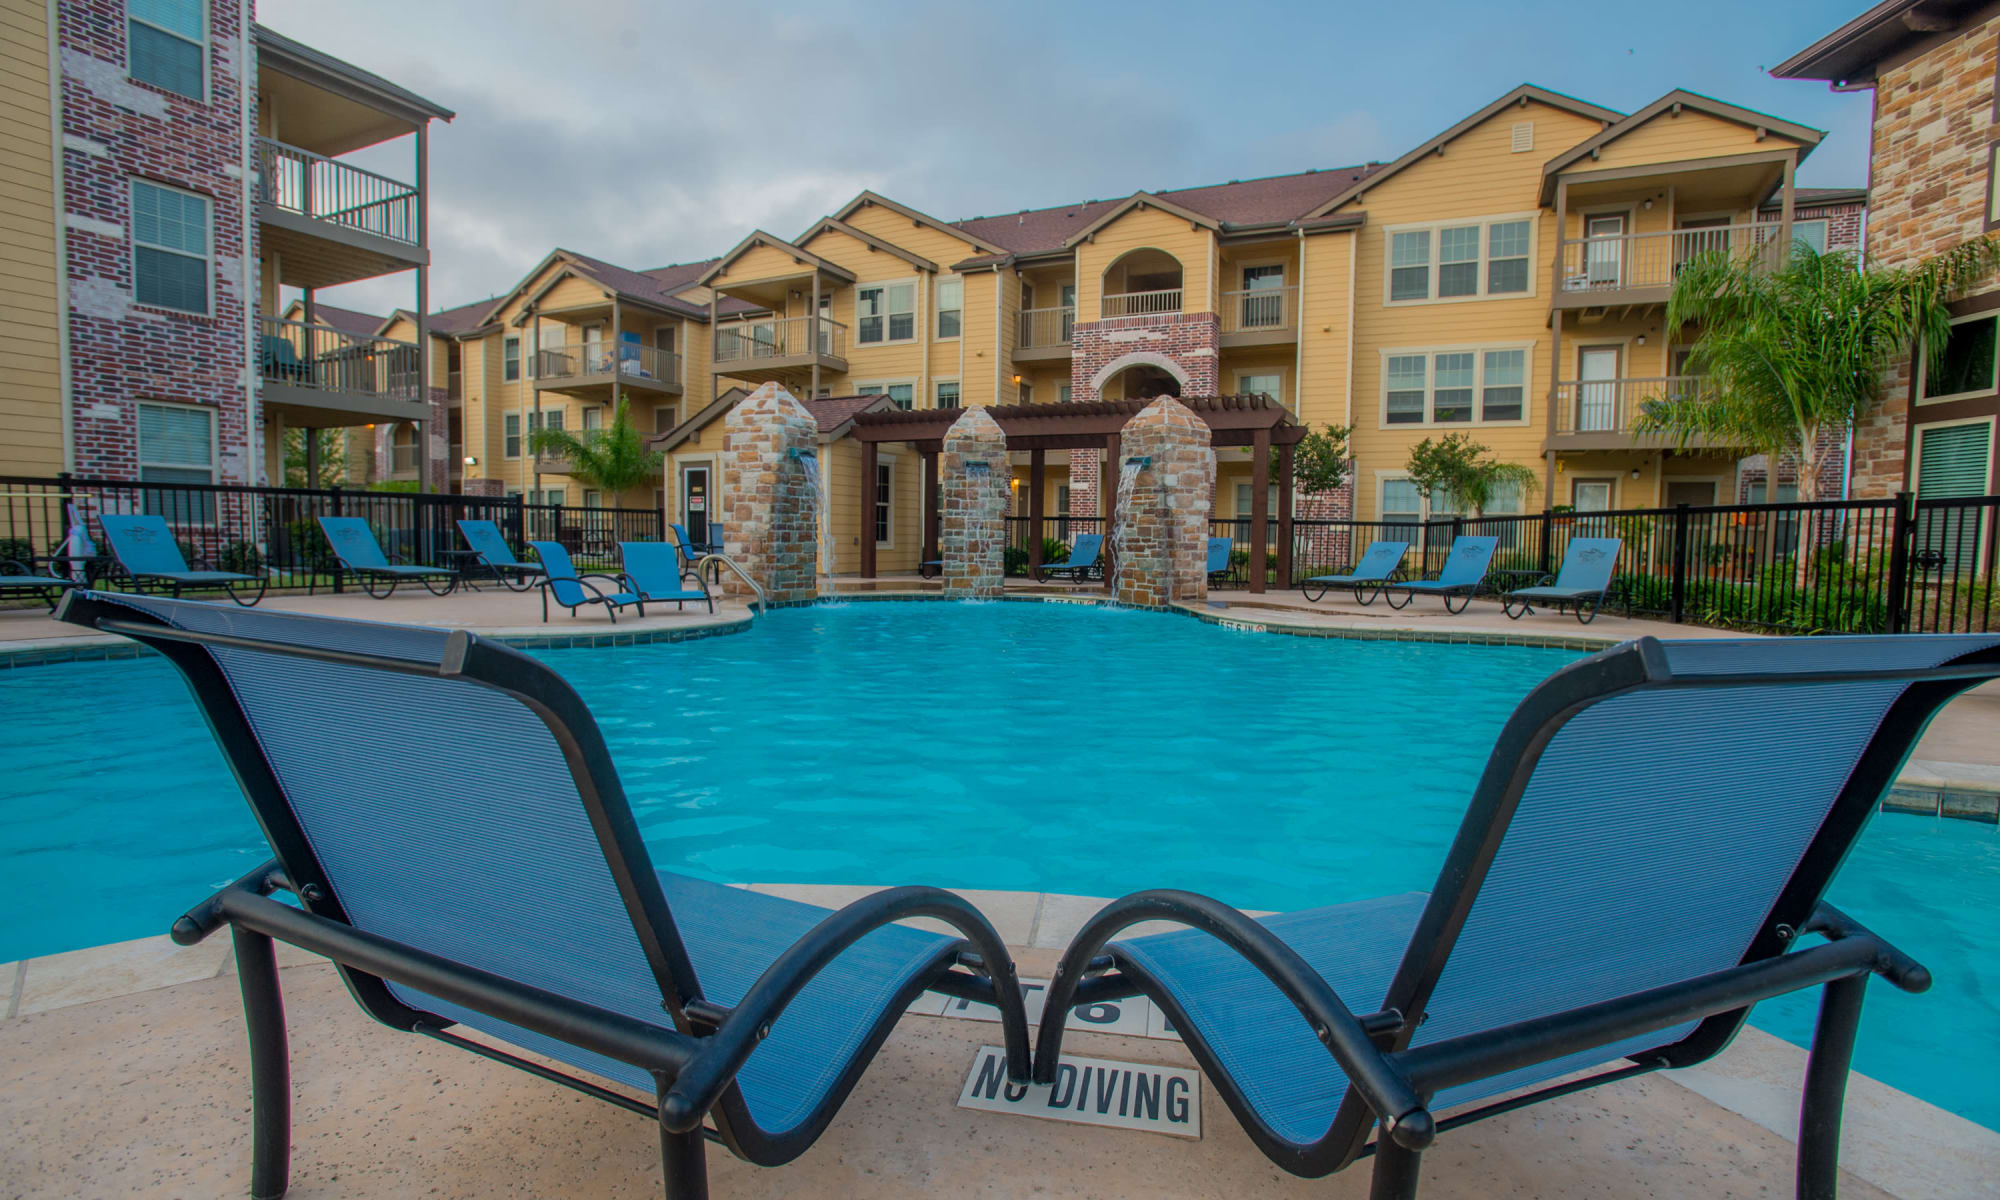 Tuscana Bay Apartments in Corpus Christi, Texas